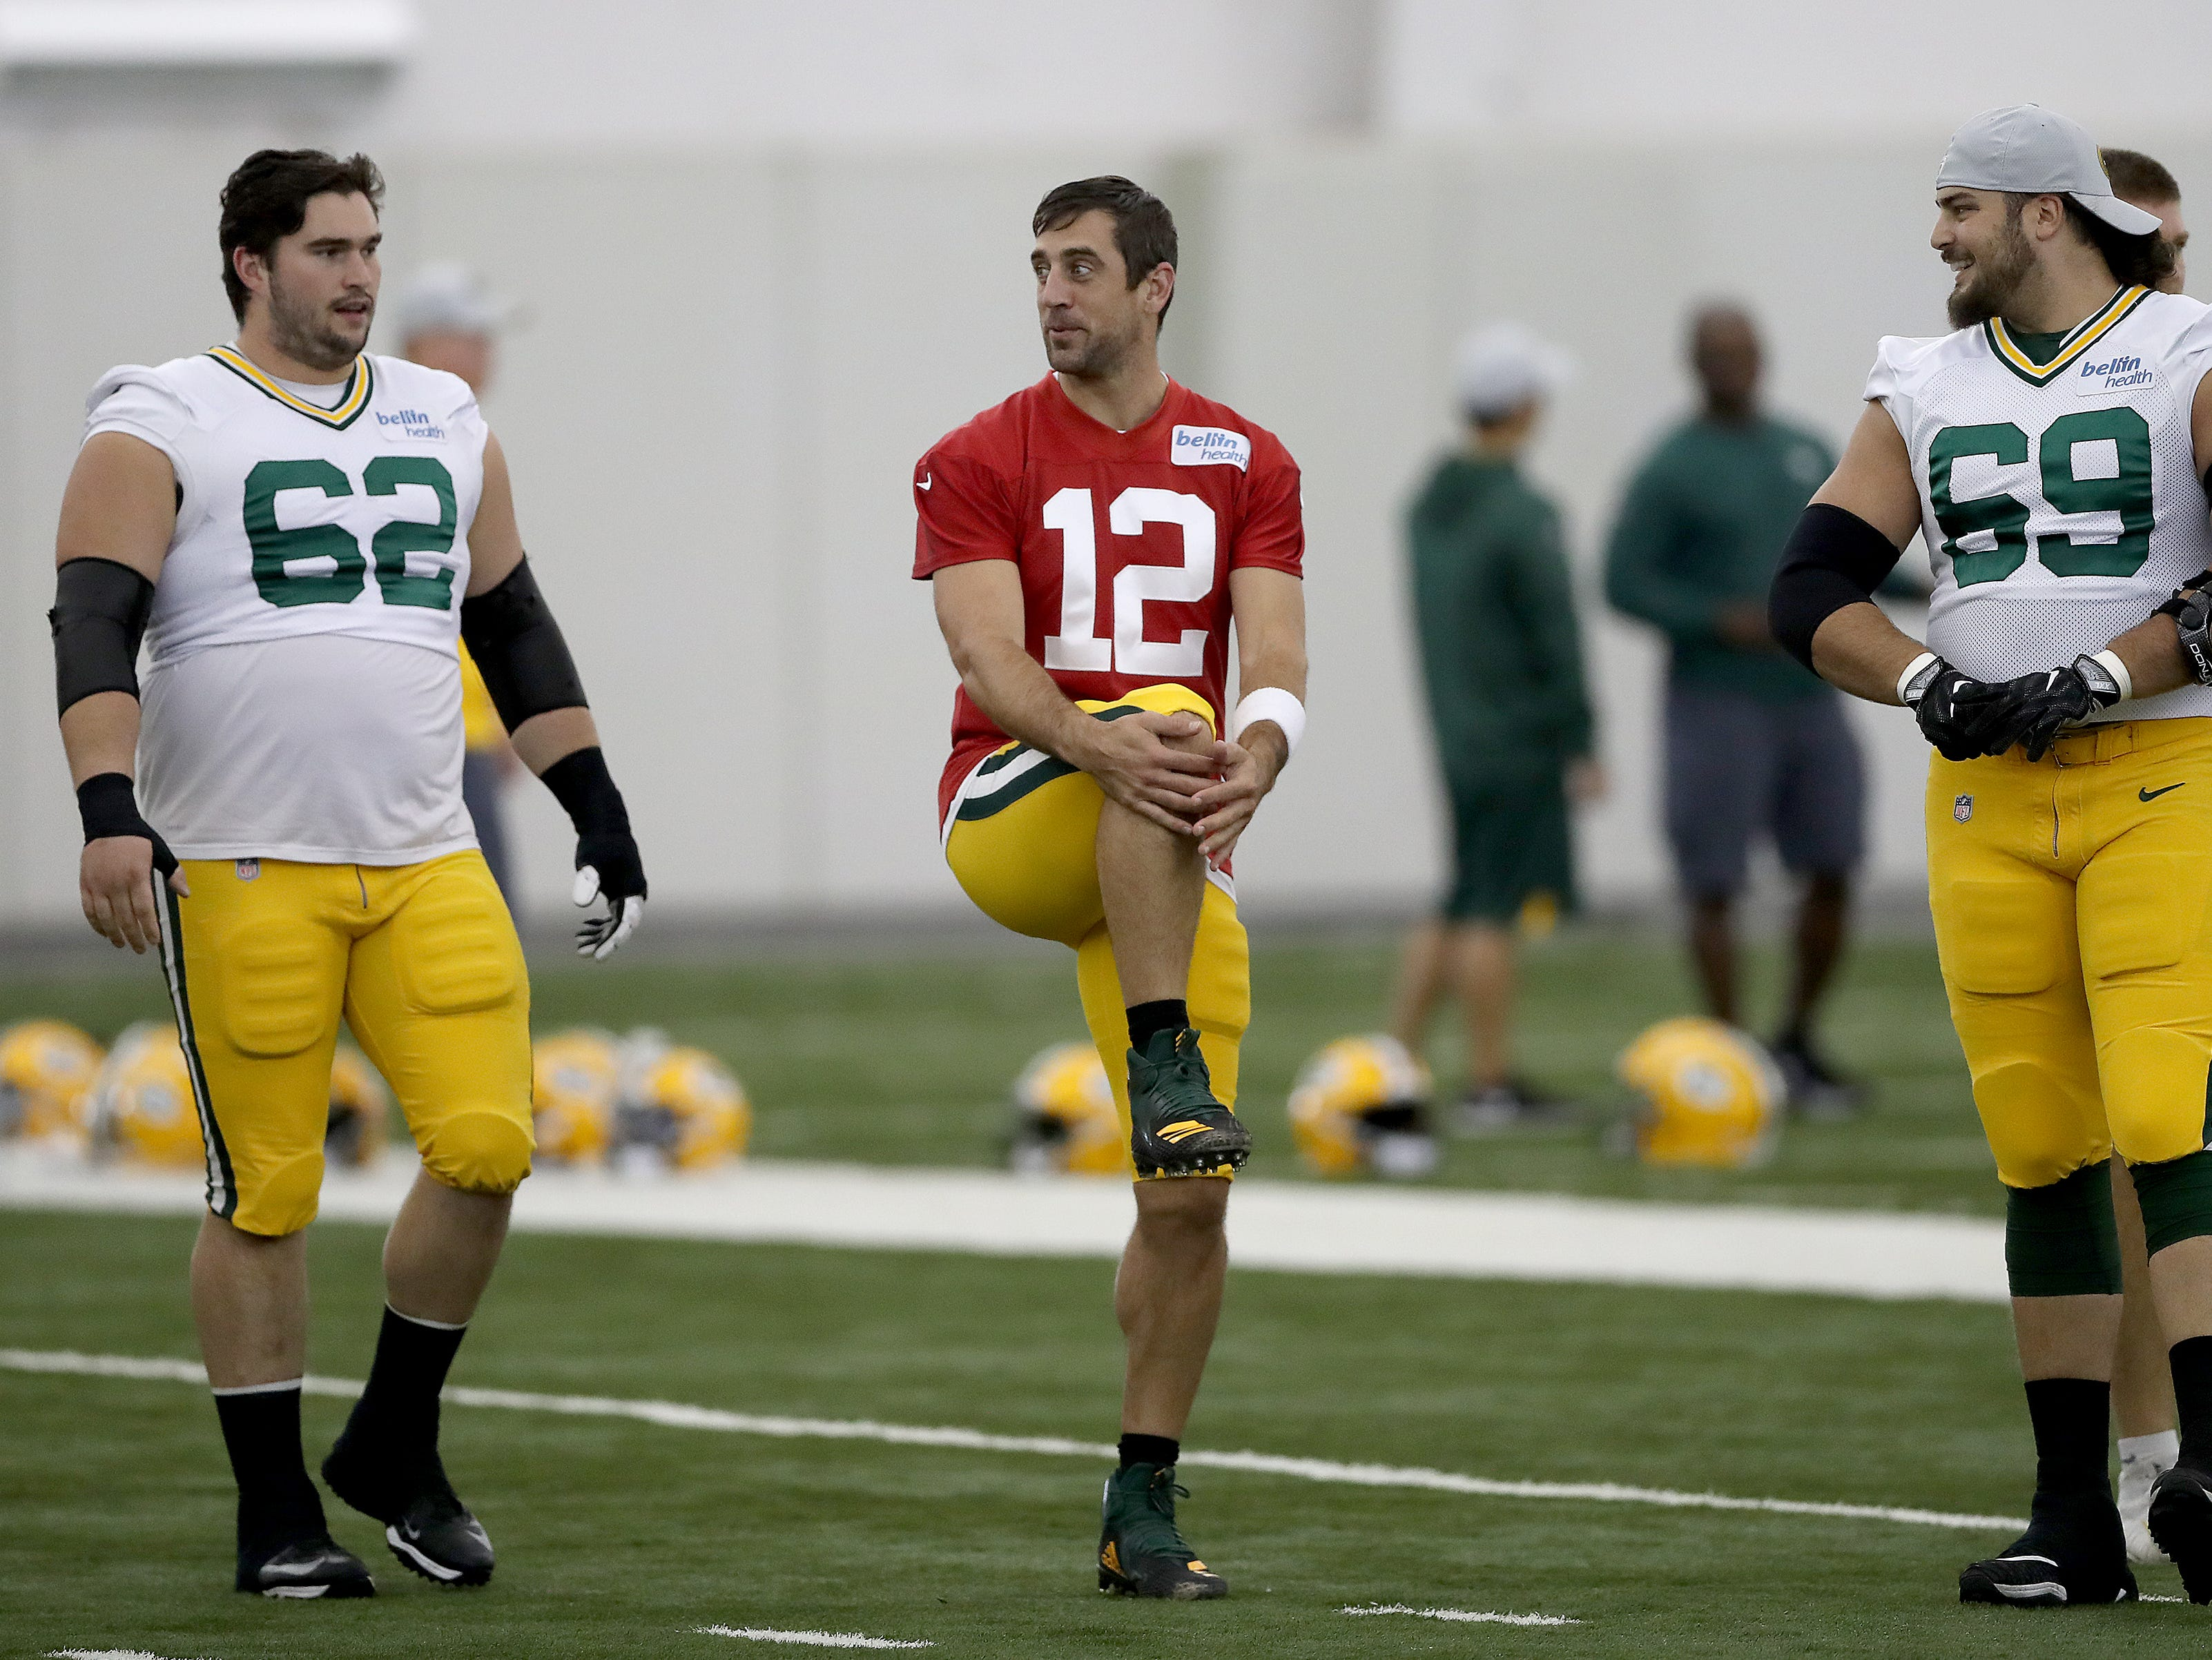 Green Bay Packers offensive guard Lucas Patrick (62), quarterback Aaron Rodgers (12) and offensive tackle David Bakhtiari (69) during Packers practice in the Don Hutson Center Monday, September 3, 2018 in Ashwaubenon, Wis